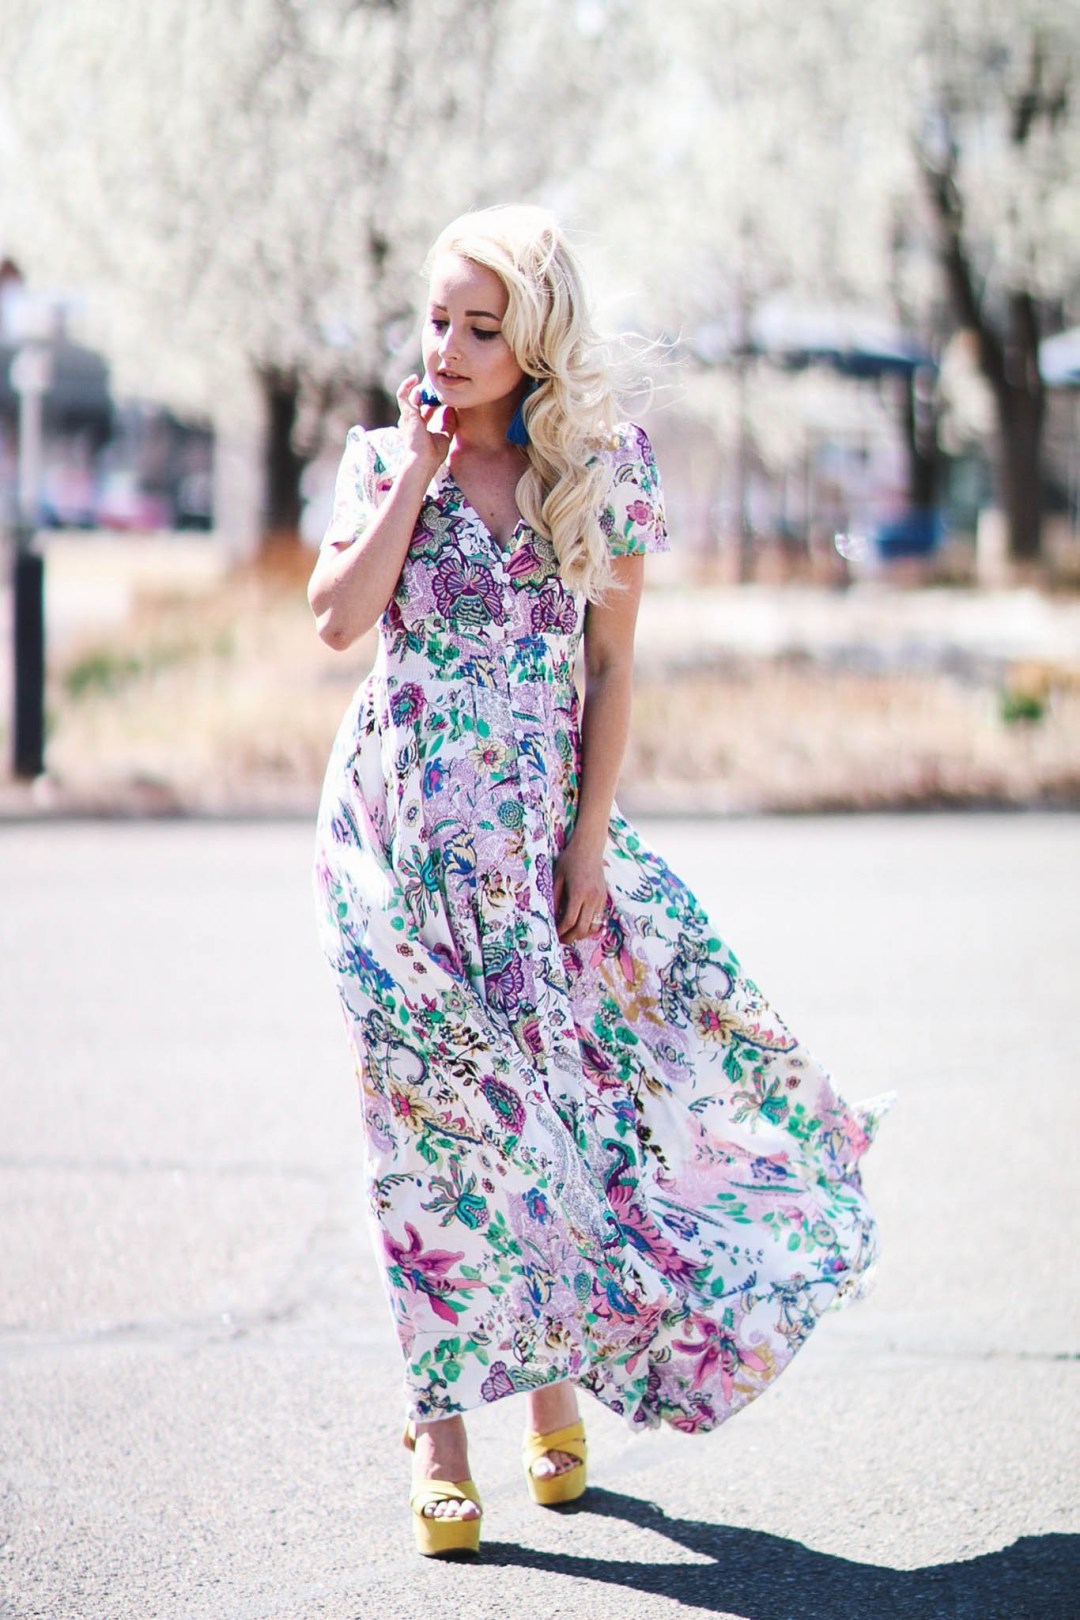 Alena Gidenko of modaprints.com styles a maxi floral dress for Spring